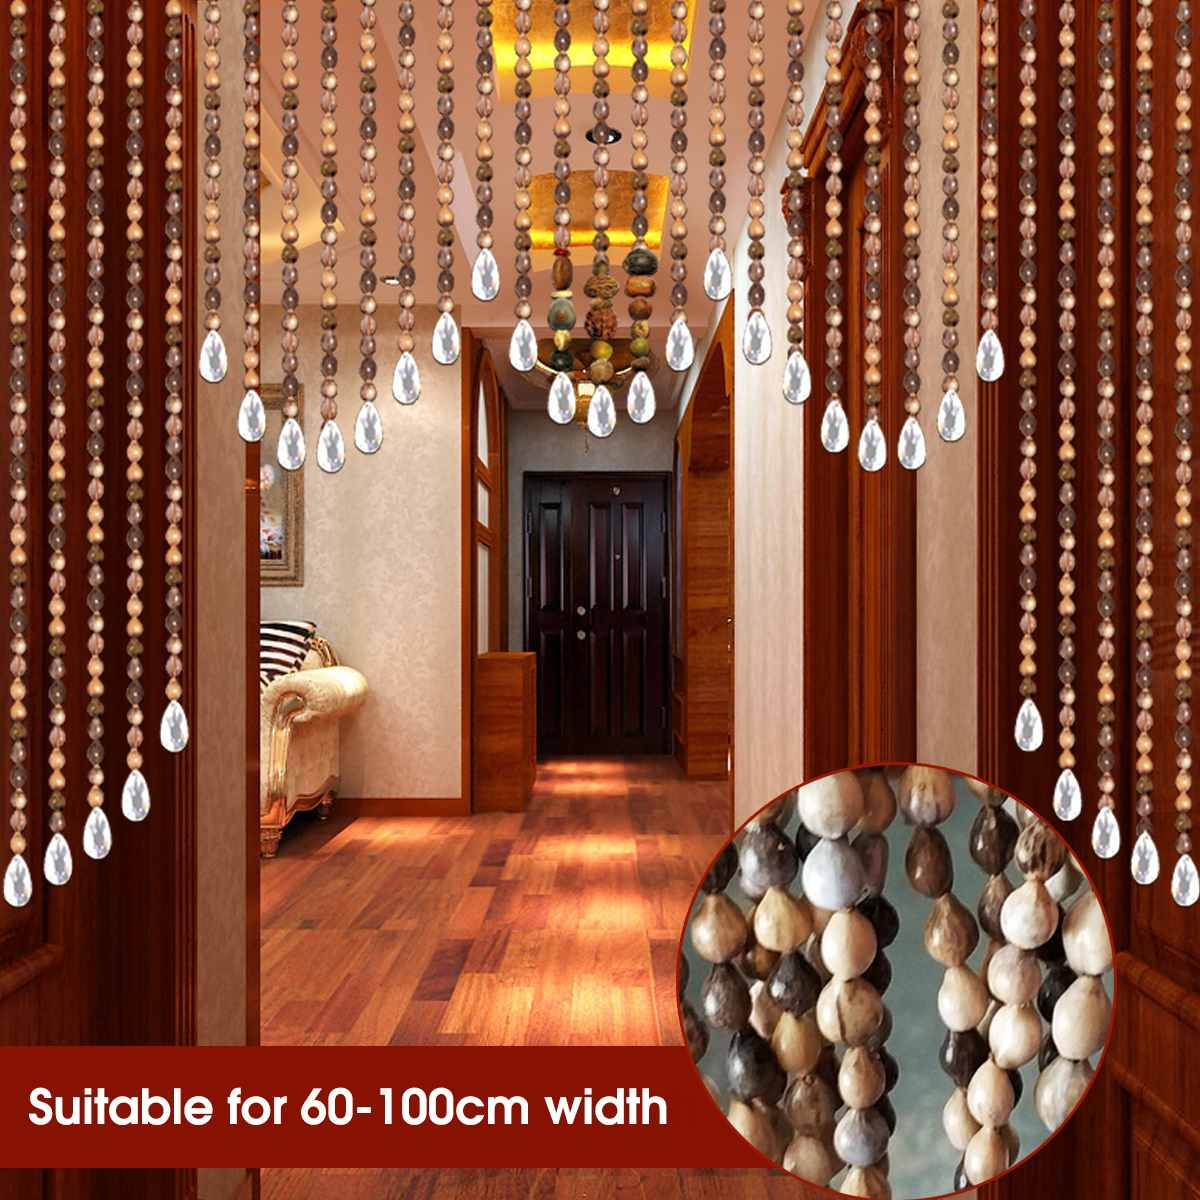 31 Lline Short Wooden Bead Curtains Fly Screen Handmade Wooden Beans Blinds For Home Porch Living Room Kitchen Entrance Decor